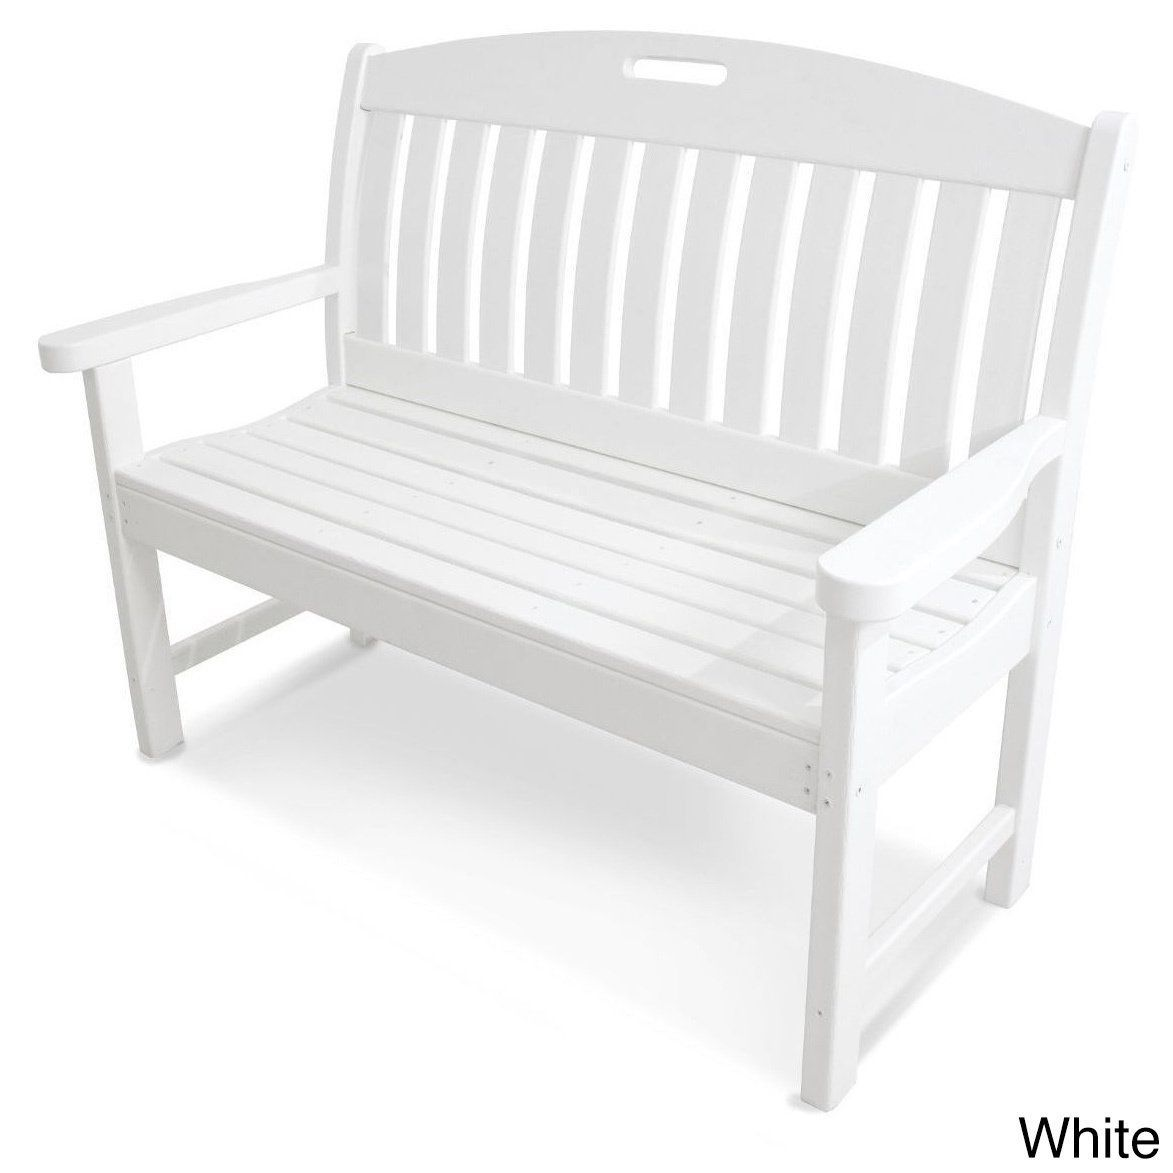 Prime Polywood Black Nautical 48 Inch Bench White Size 48 Gmtry Best Dining Table And Chair Ideas Images Gmtryco